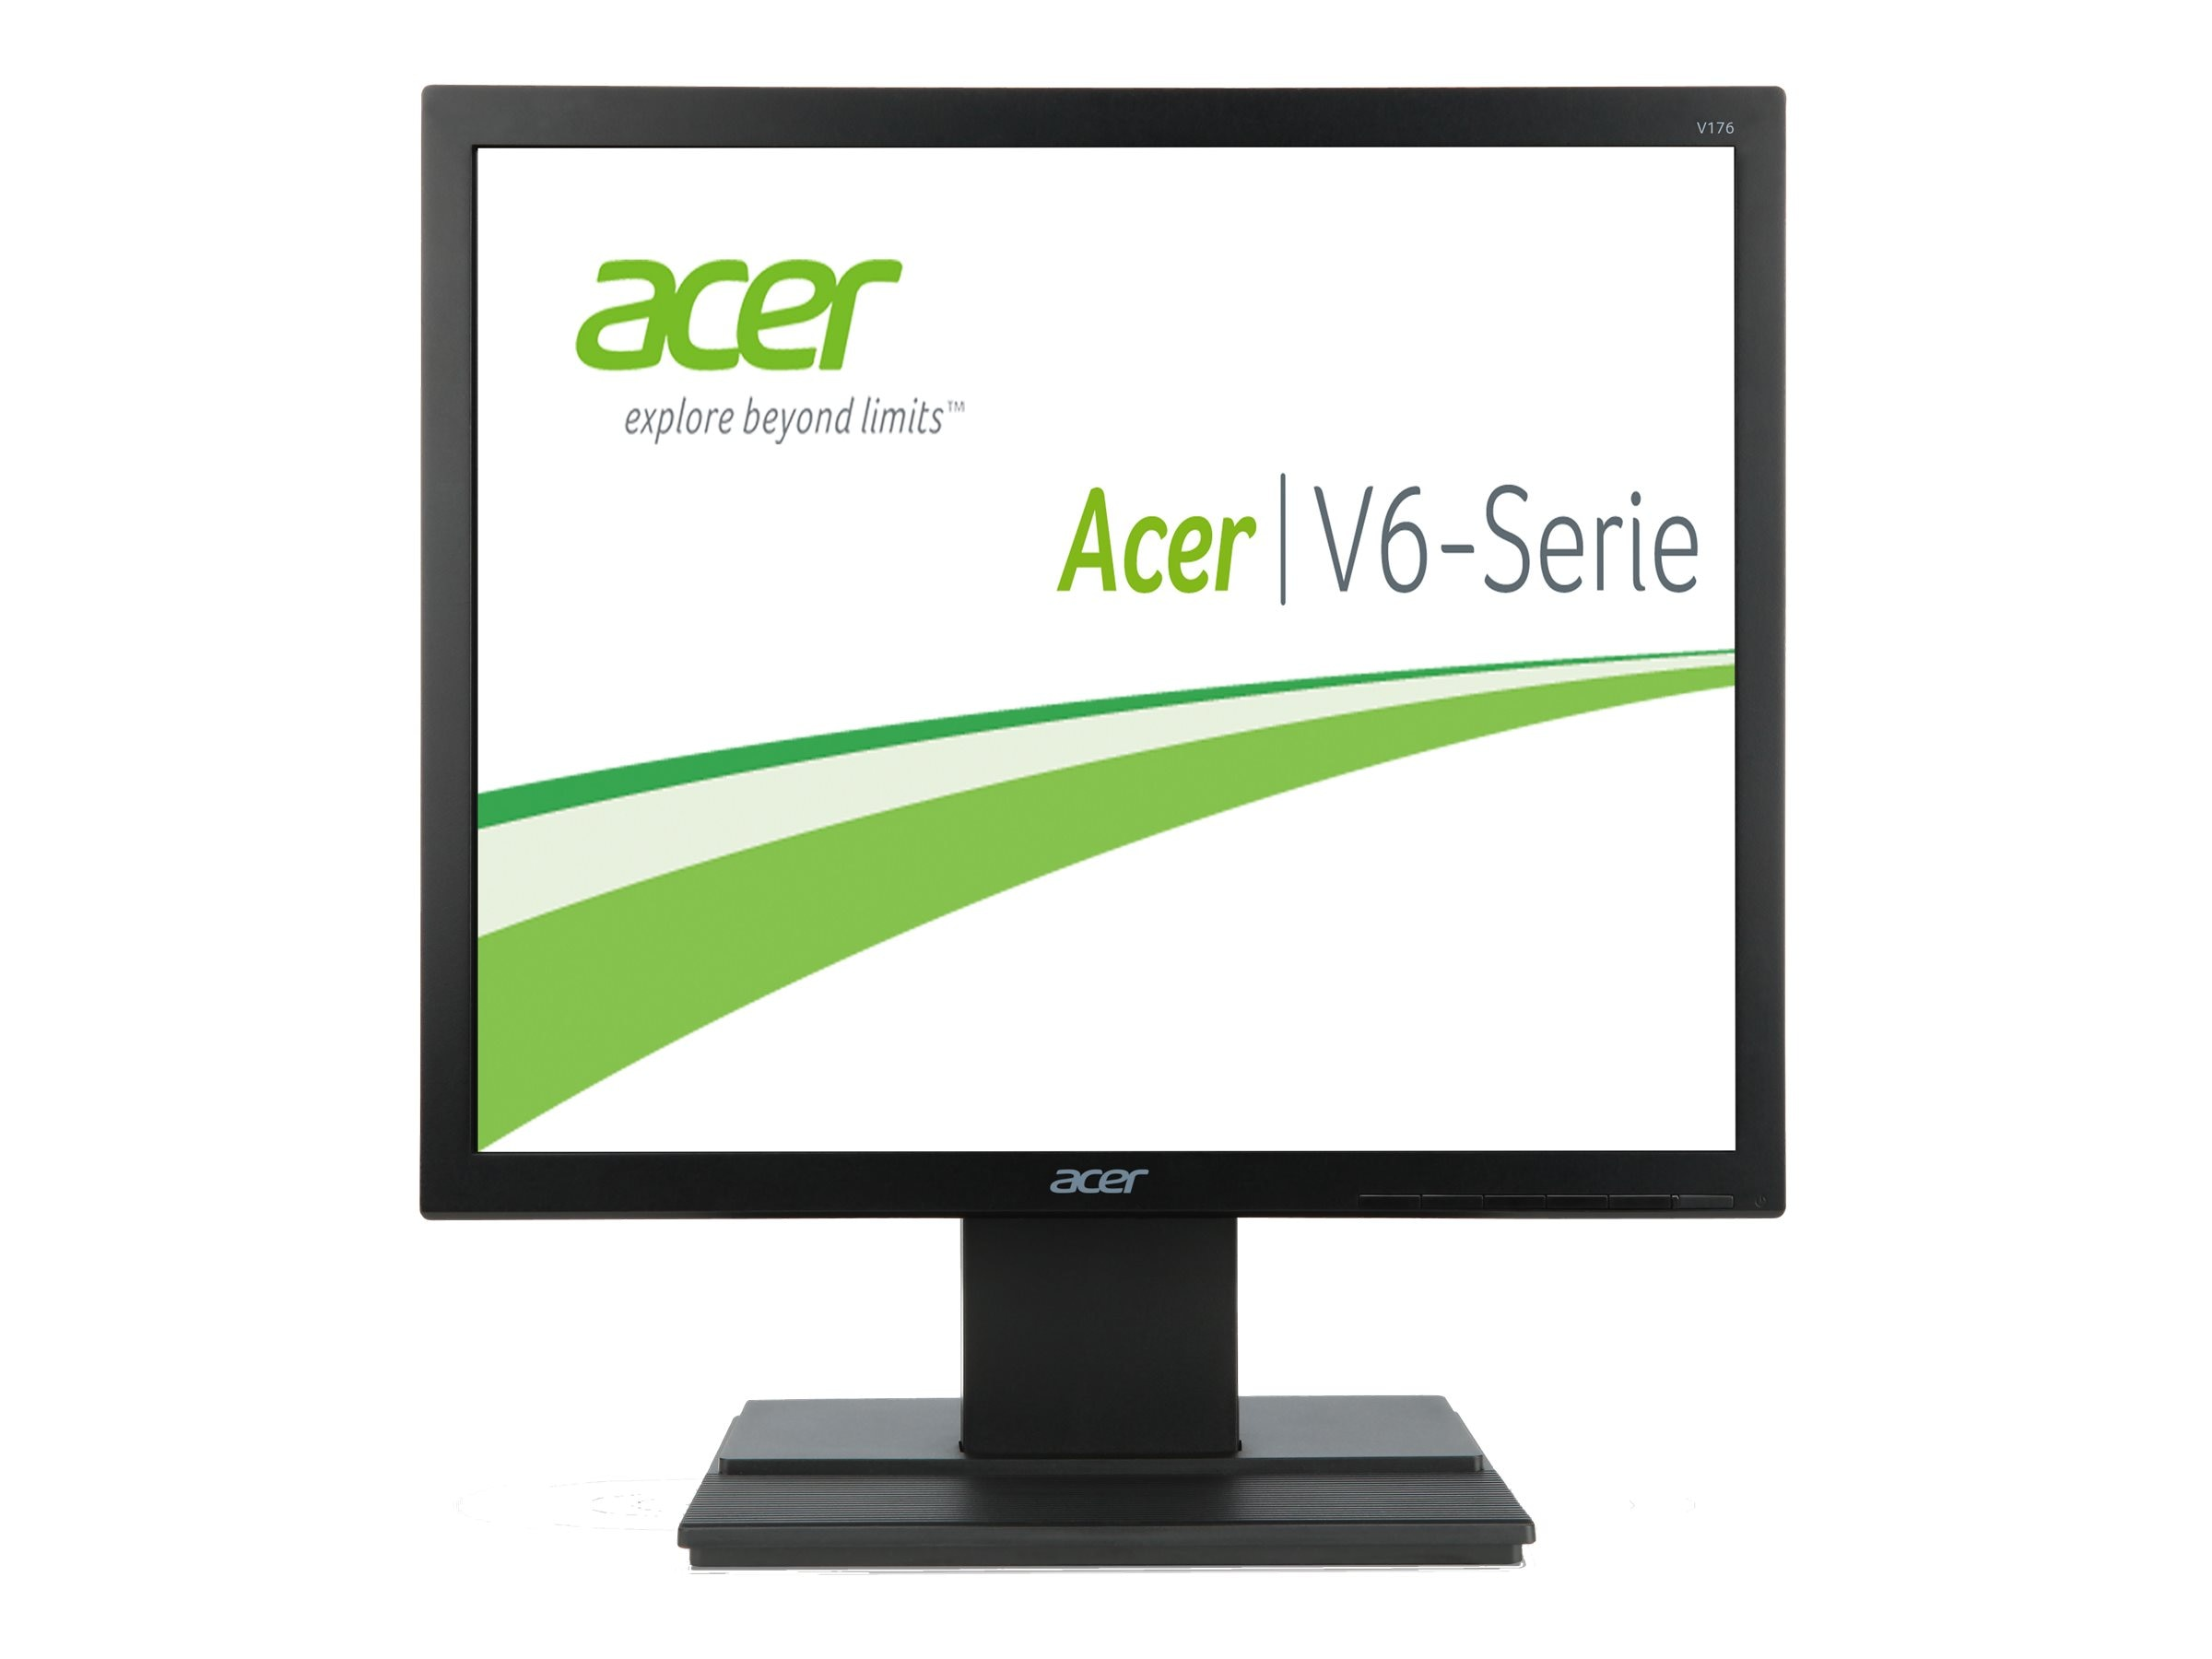 Acer 17 V176L b LED-LCD Monitor, Black